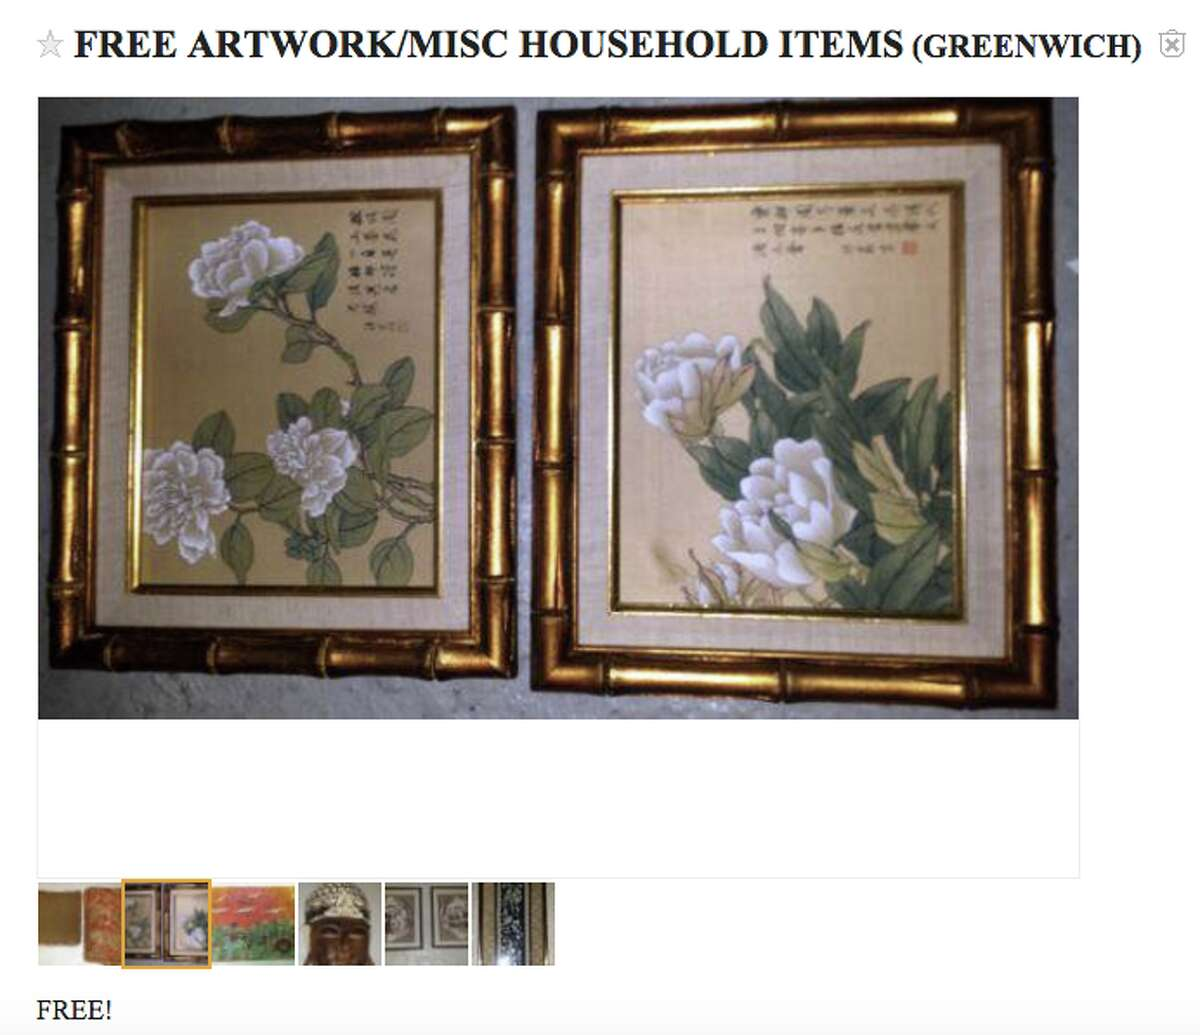 Some random art and miscellaneous items Looking for some cool artwork or random household knick-knacks. A Greenwich residents is getting rid of some cool artwork for free. Here's the link.